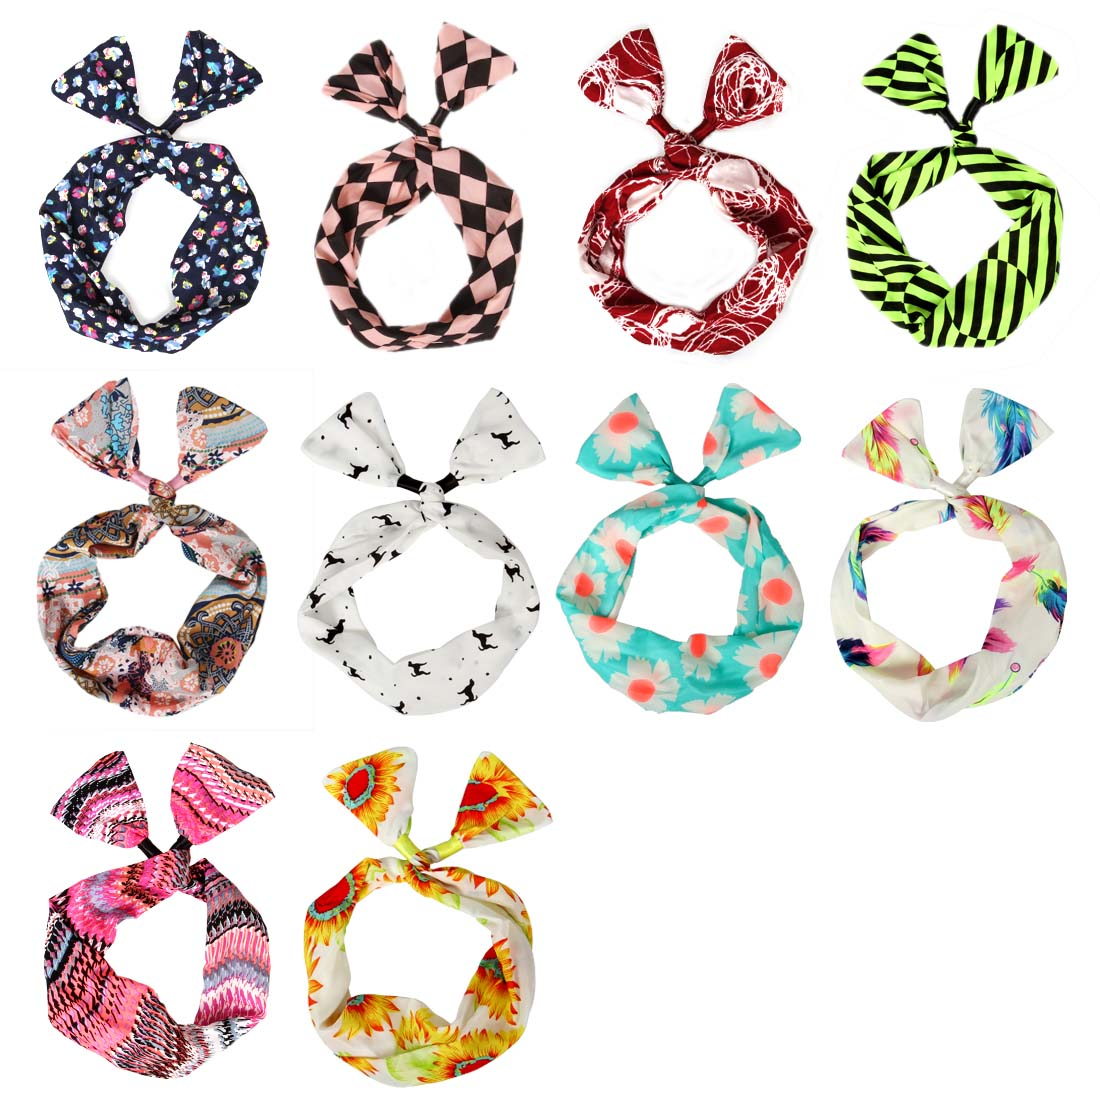 BMC 10pc Mixed Design Wired Hair Tie Twist Bow Headband Scarf Wrap Accessory Lot